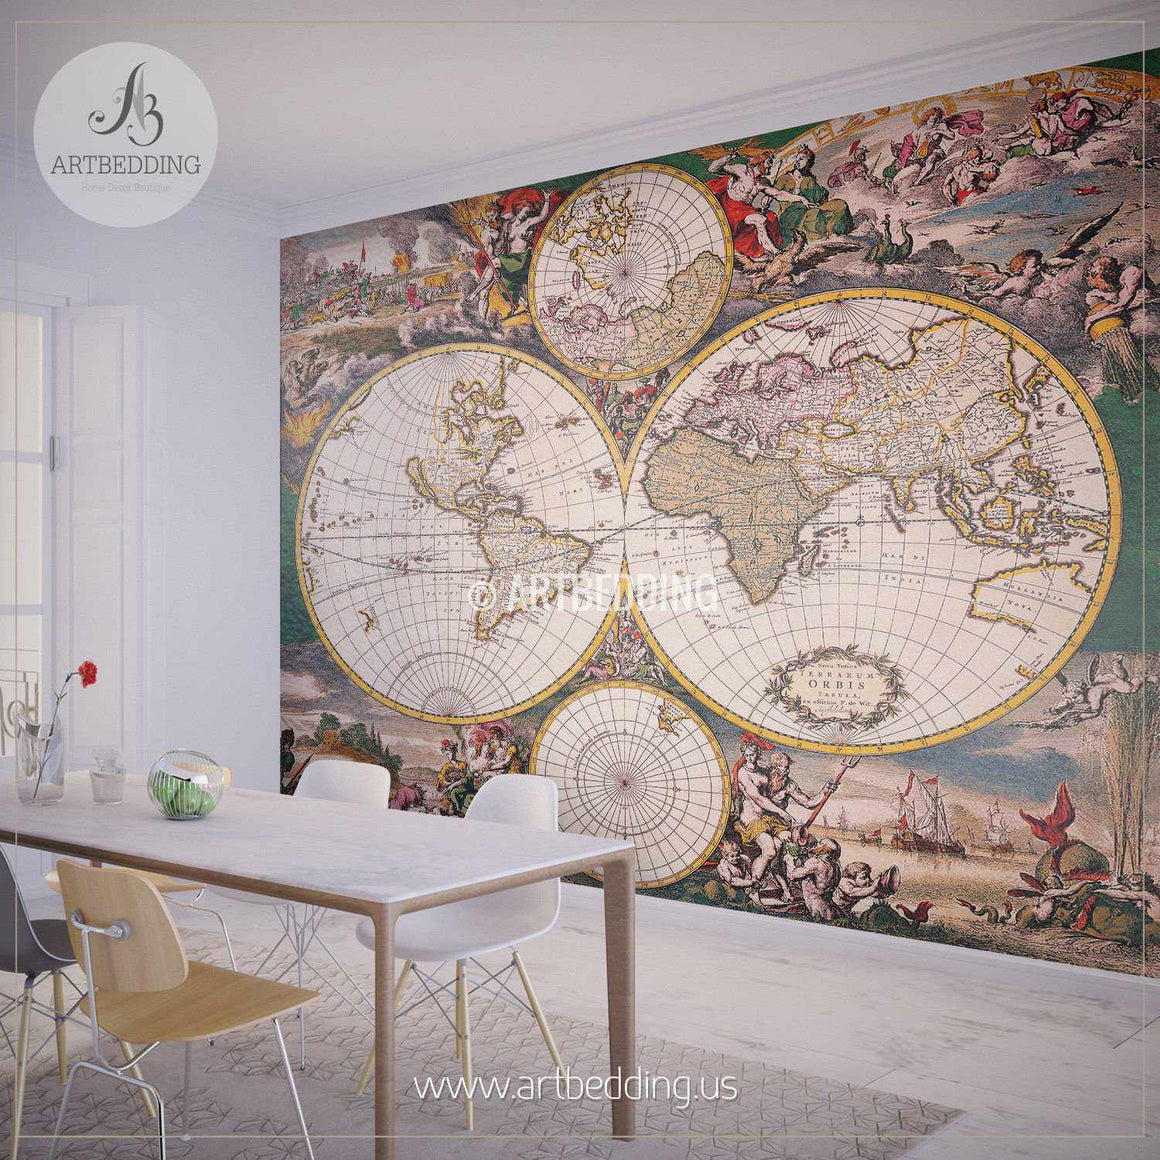 Vintage Map Hemisphere Wall Mural, Self Adhesive Peel & Stick Photo Mural, Atlas wall mural, mural home decor wall mural